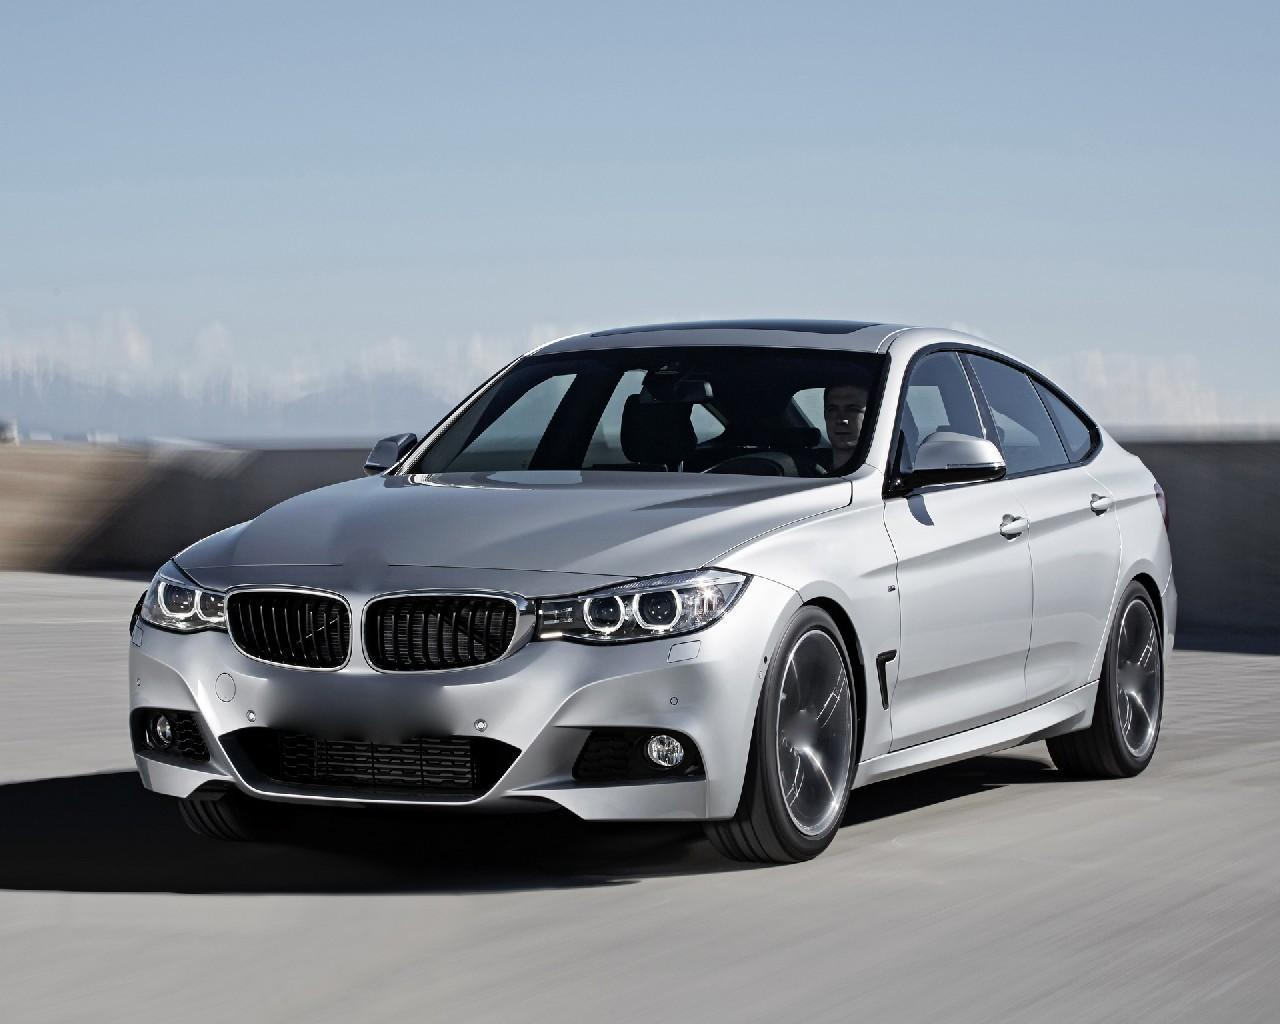 New Wallpapers Bmw 3 Series Gt For Android Apk Download